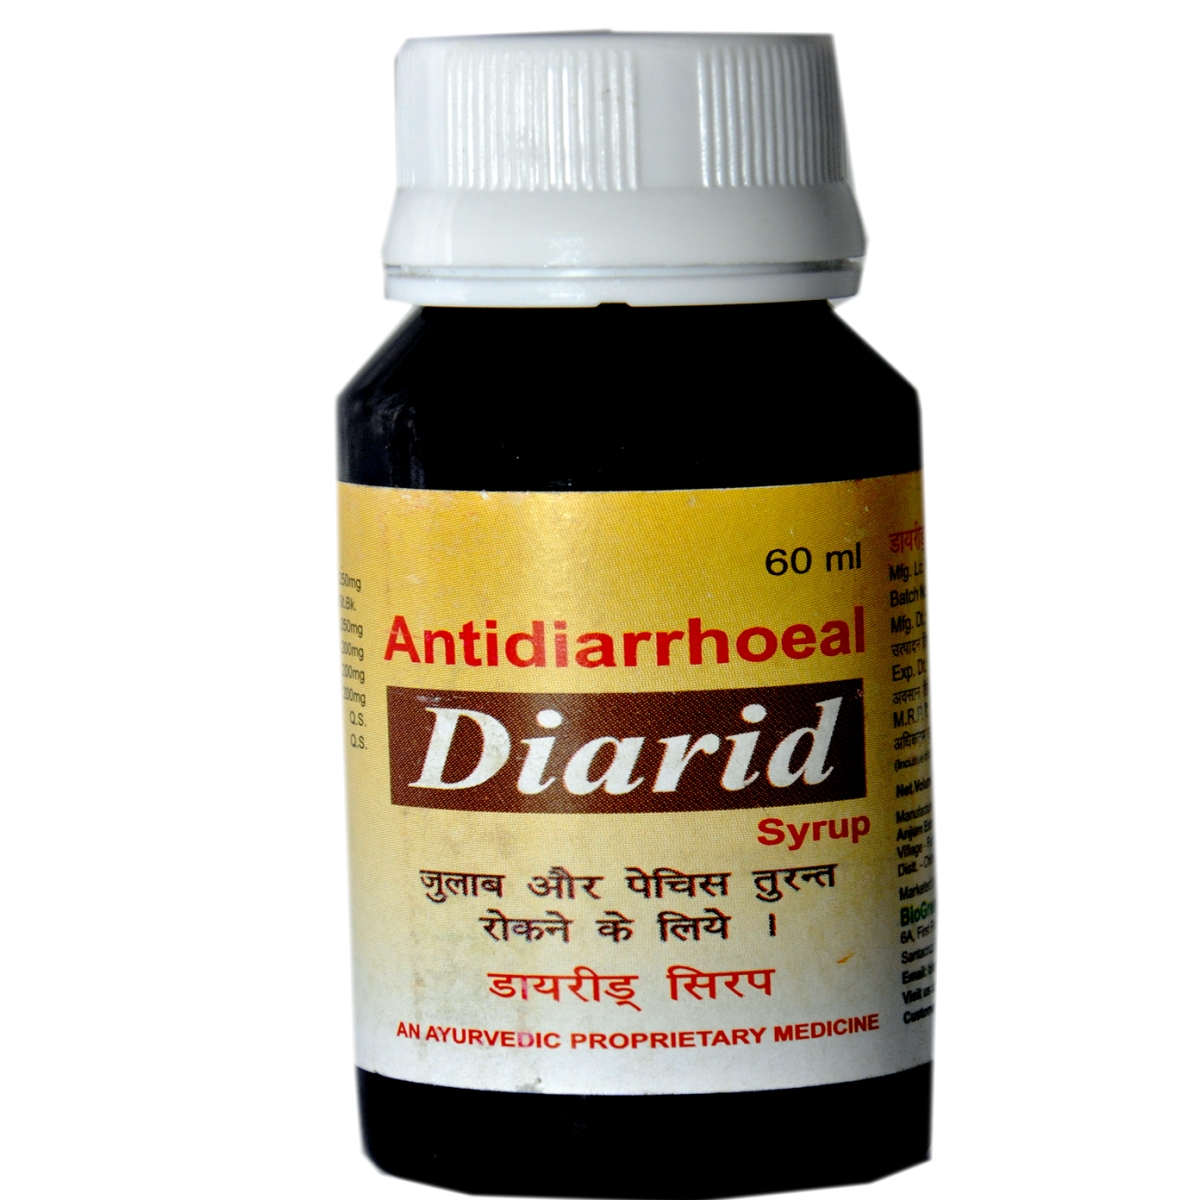 Diarid Syrup In Port Blair